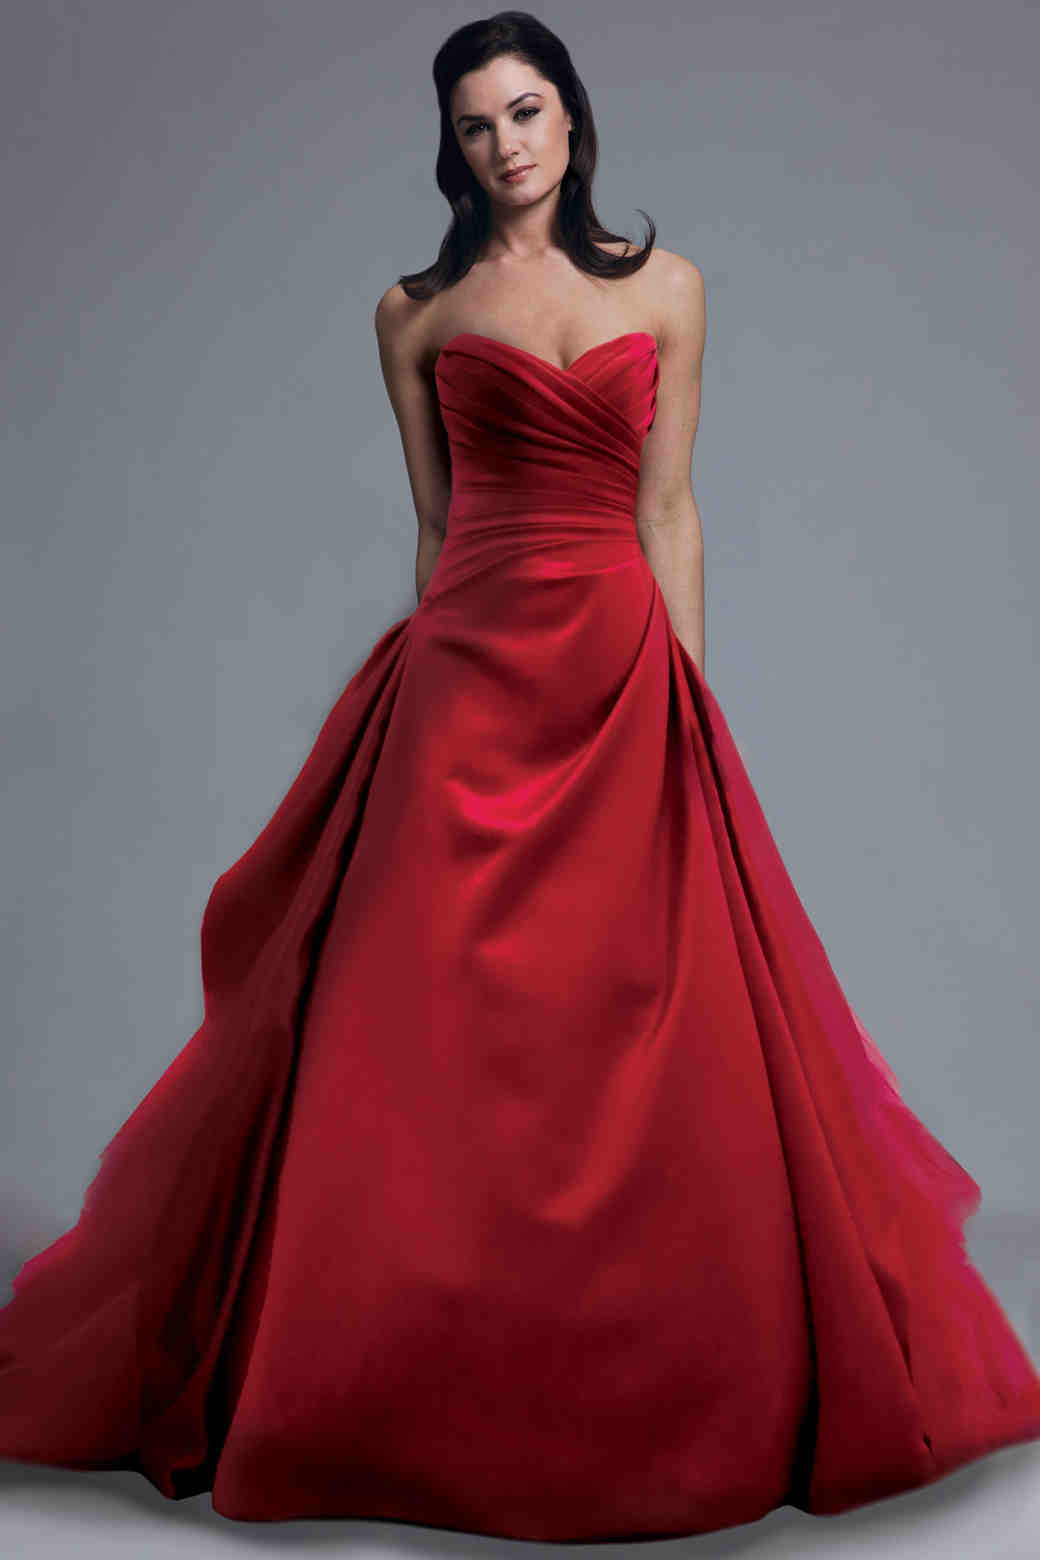 Red wedding dresses spring 2013 bridal fashion week for Pics of red wedding dresses